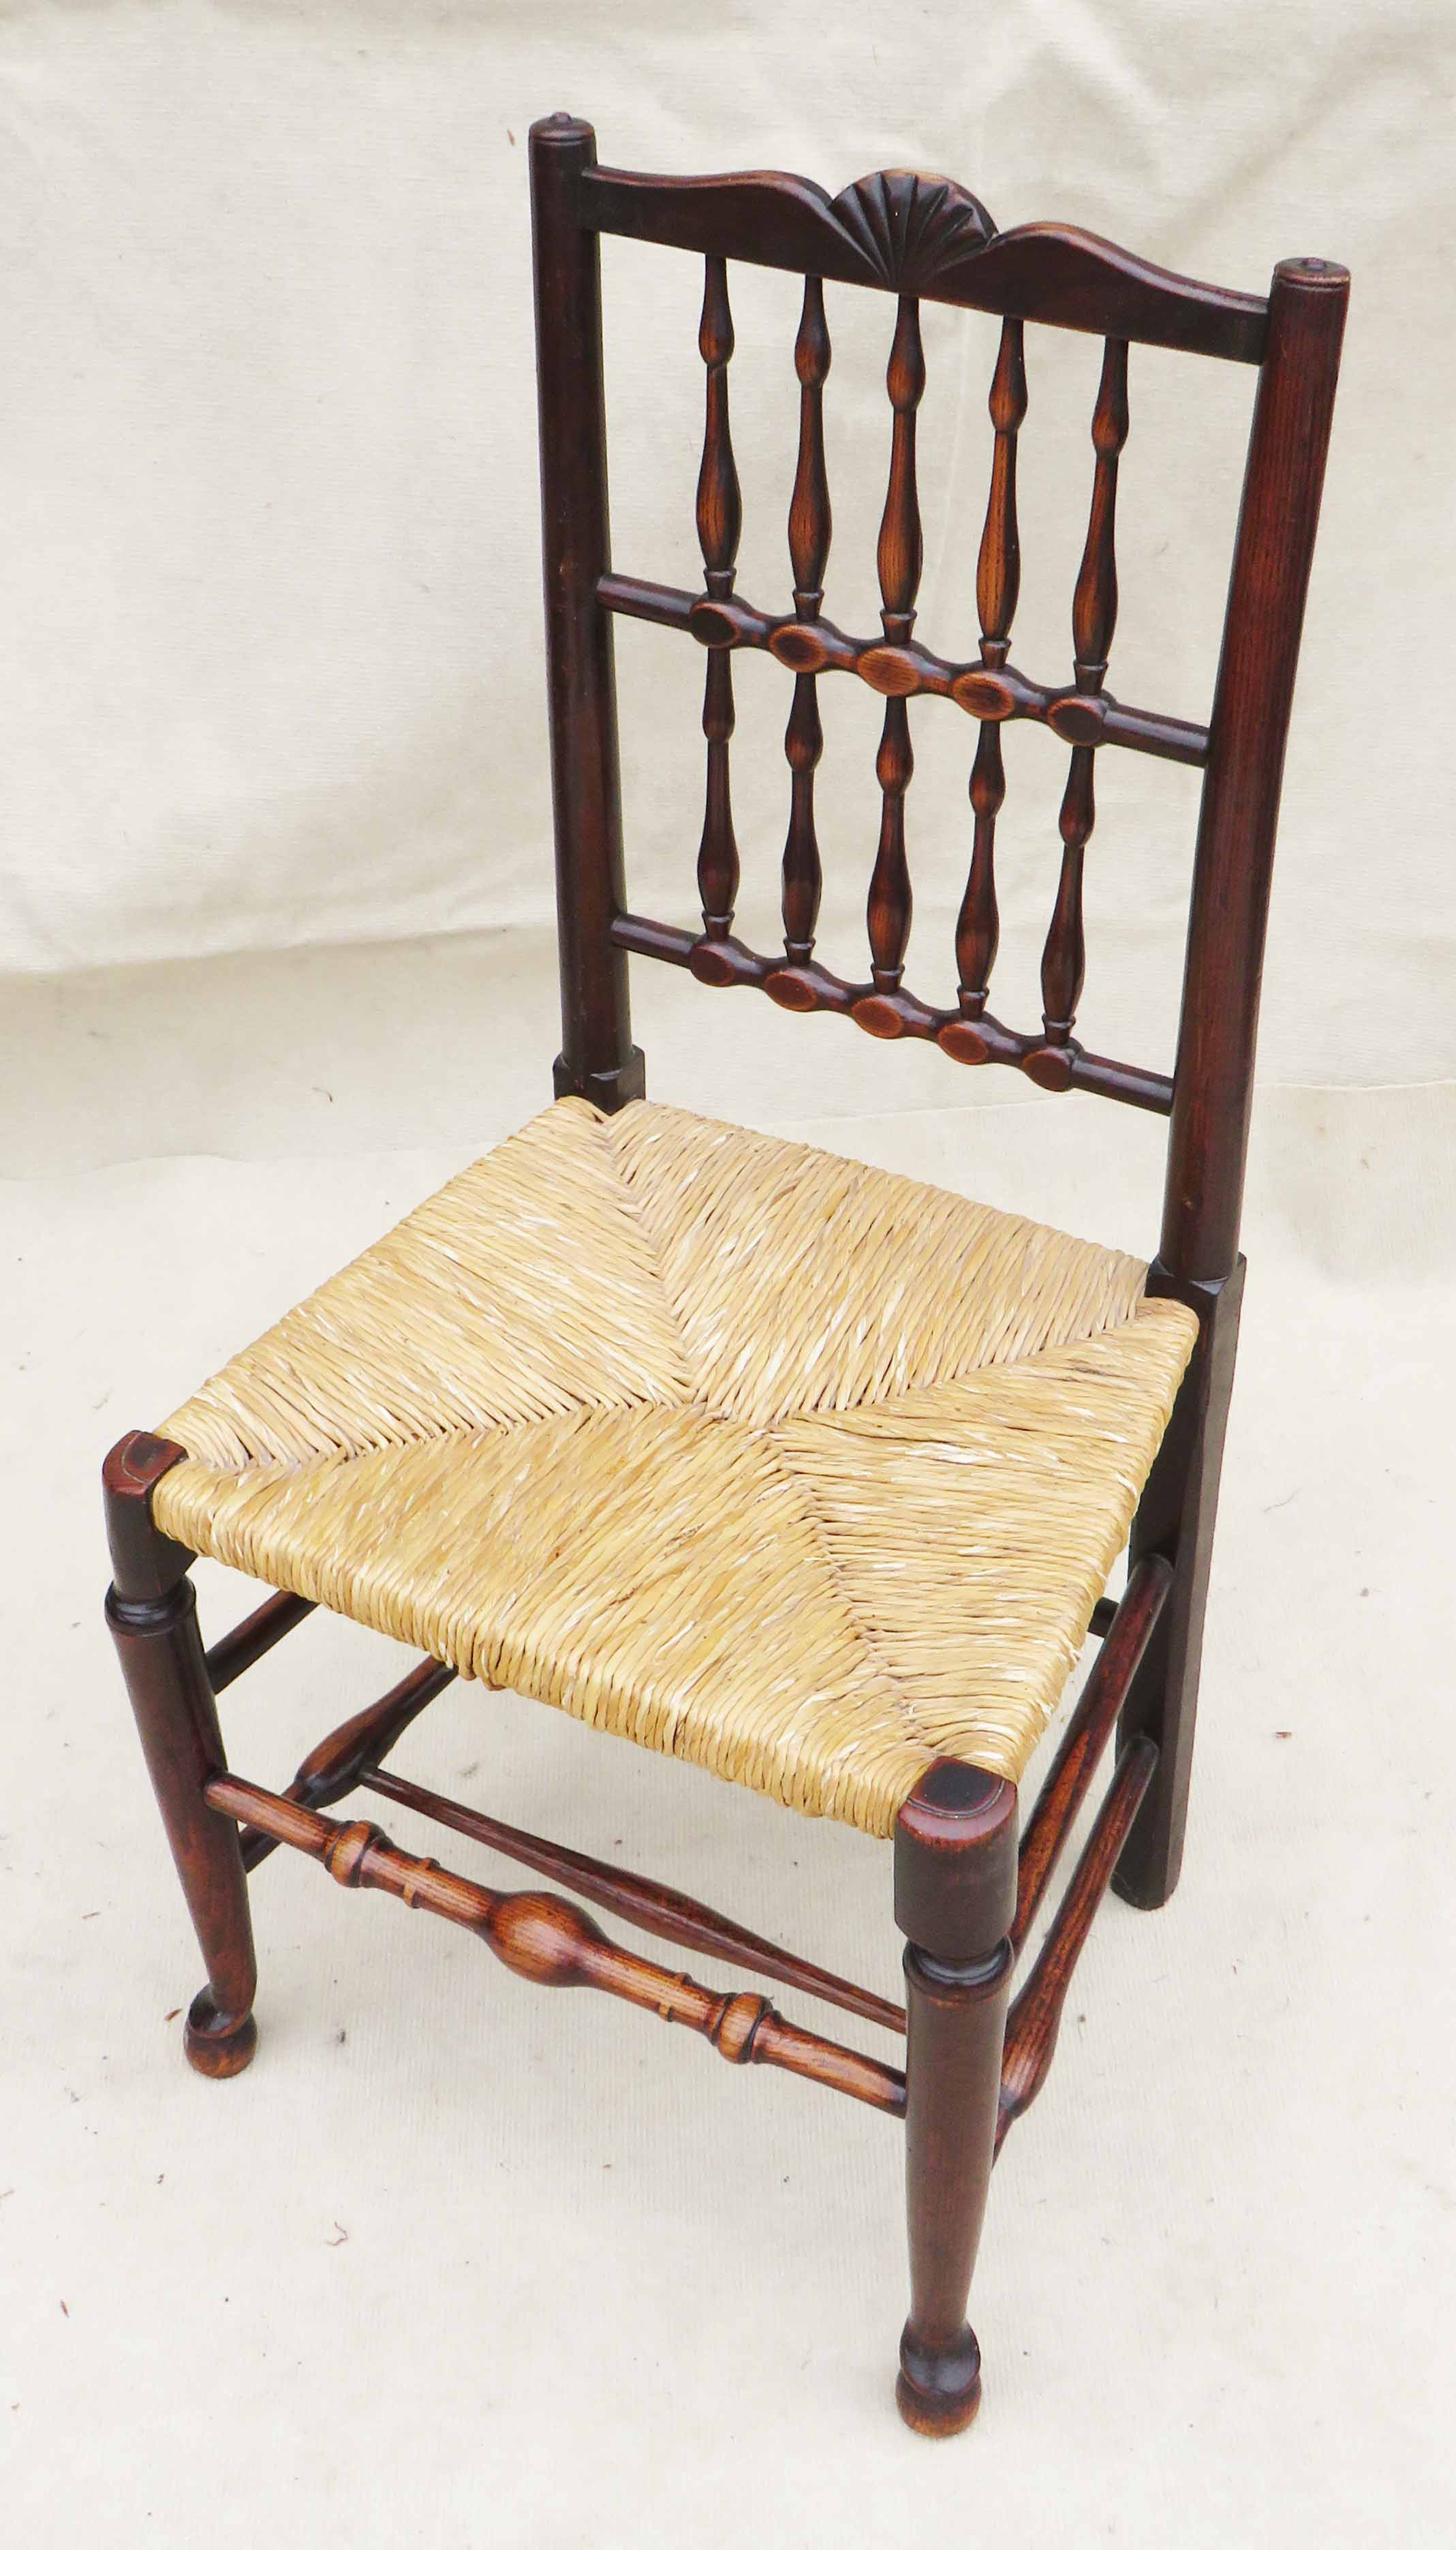 Matched Set Of 8 Spindle Back Dining Chairs, Early 19th Century - Image 9 of 12